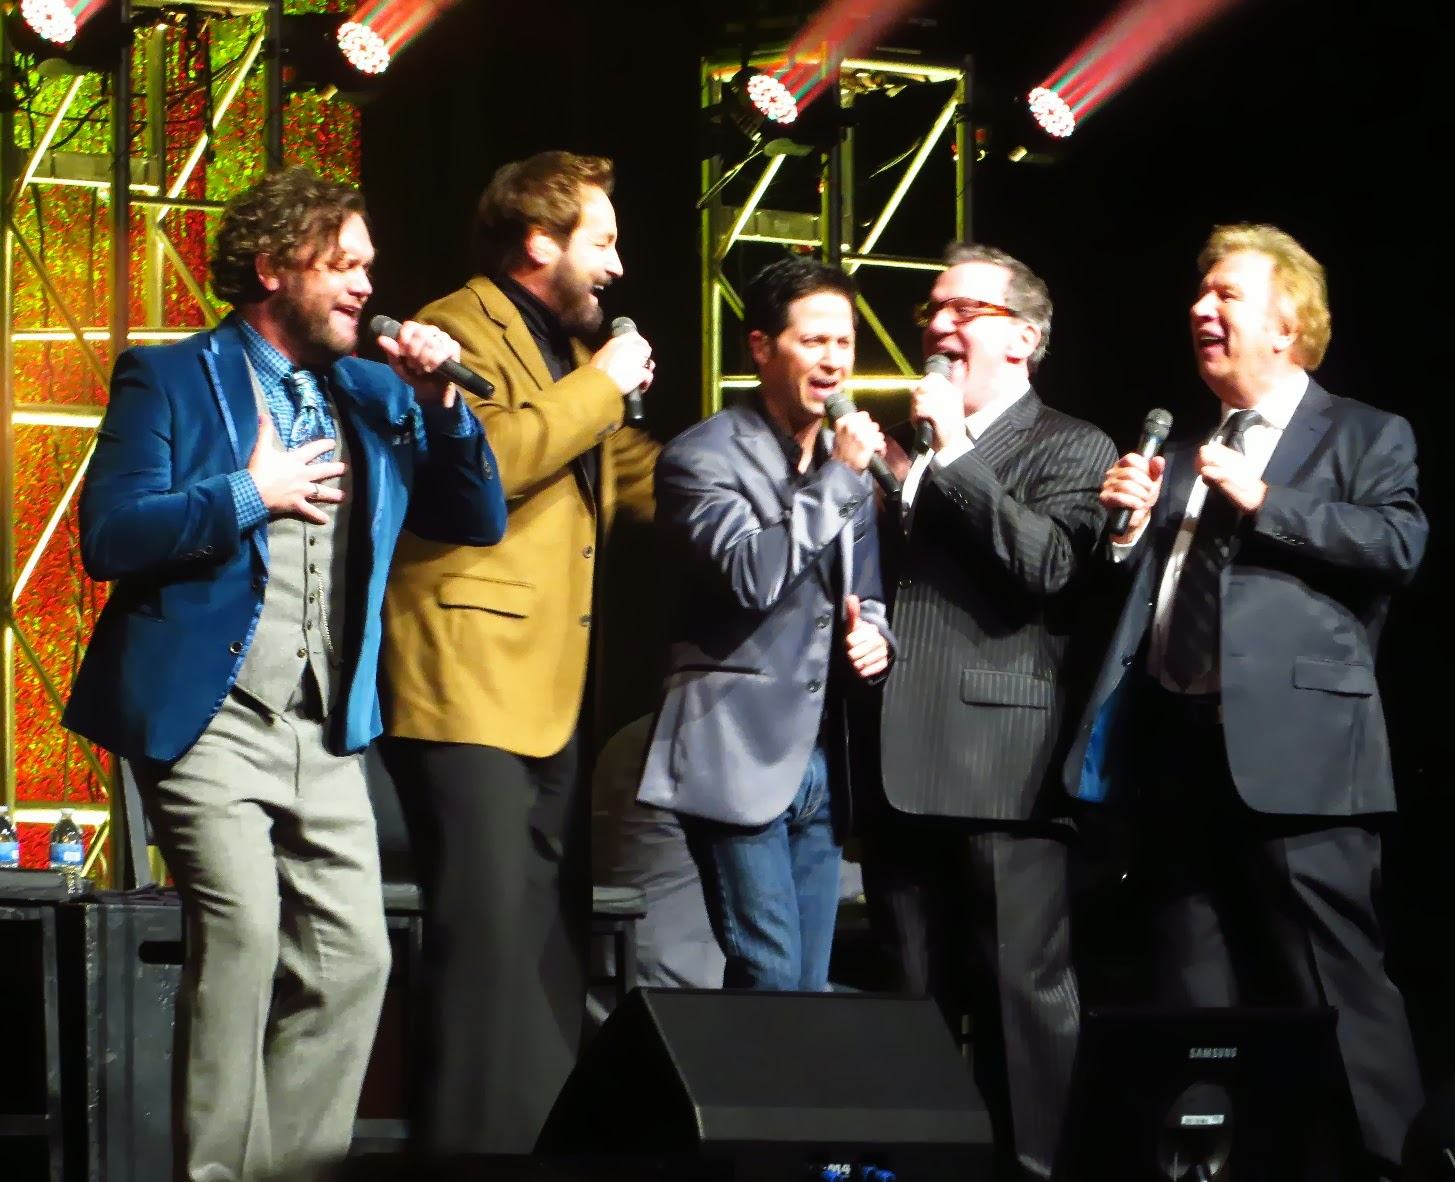 Gaither Vocal Band - Hymns (2014) live performance on stage